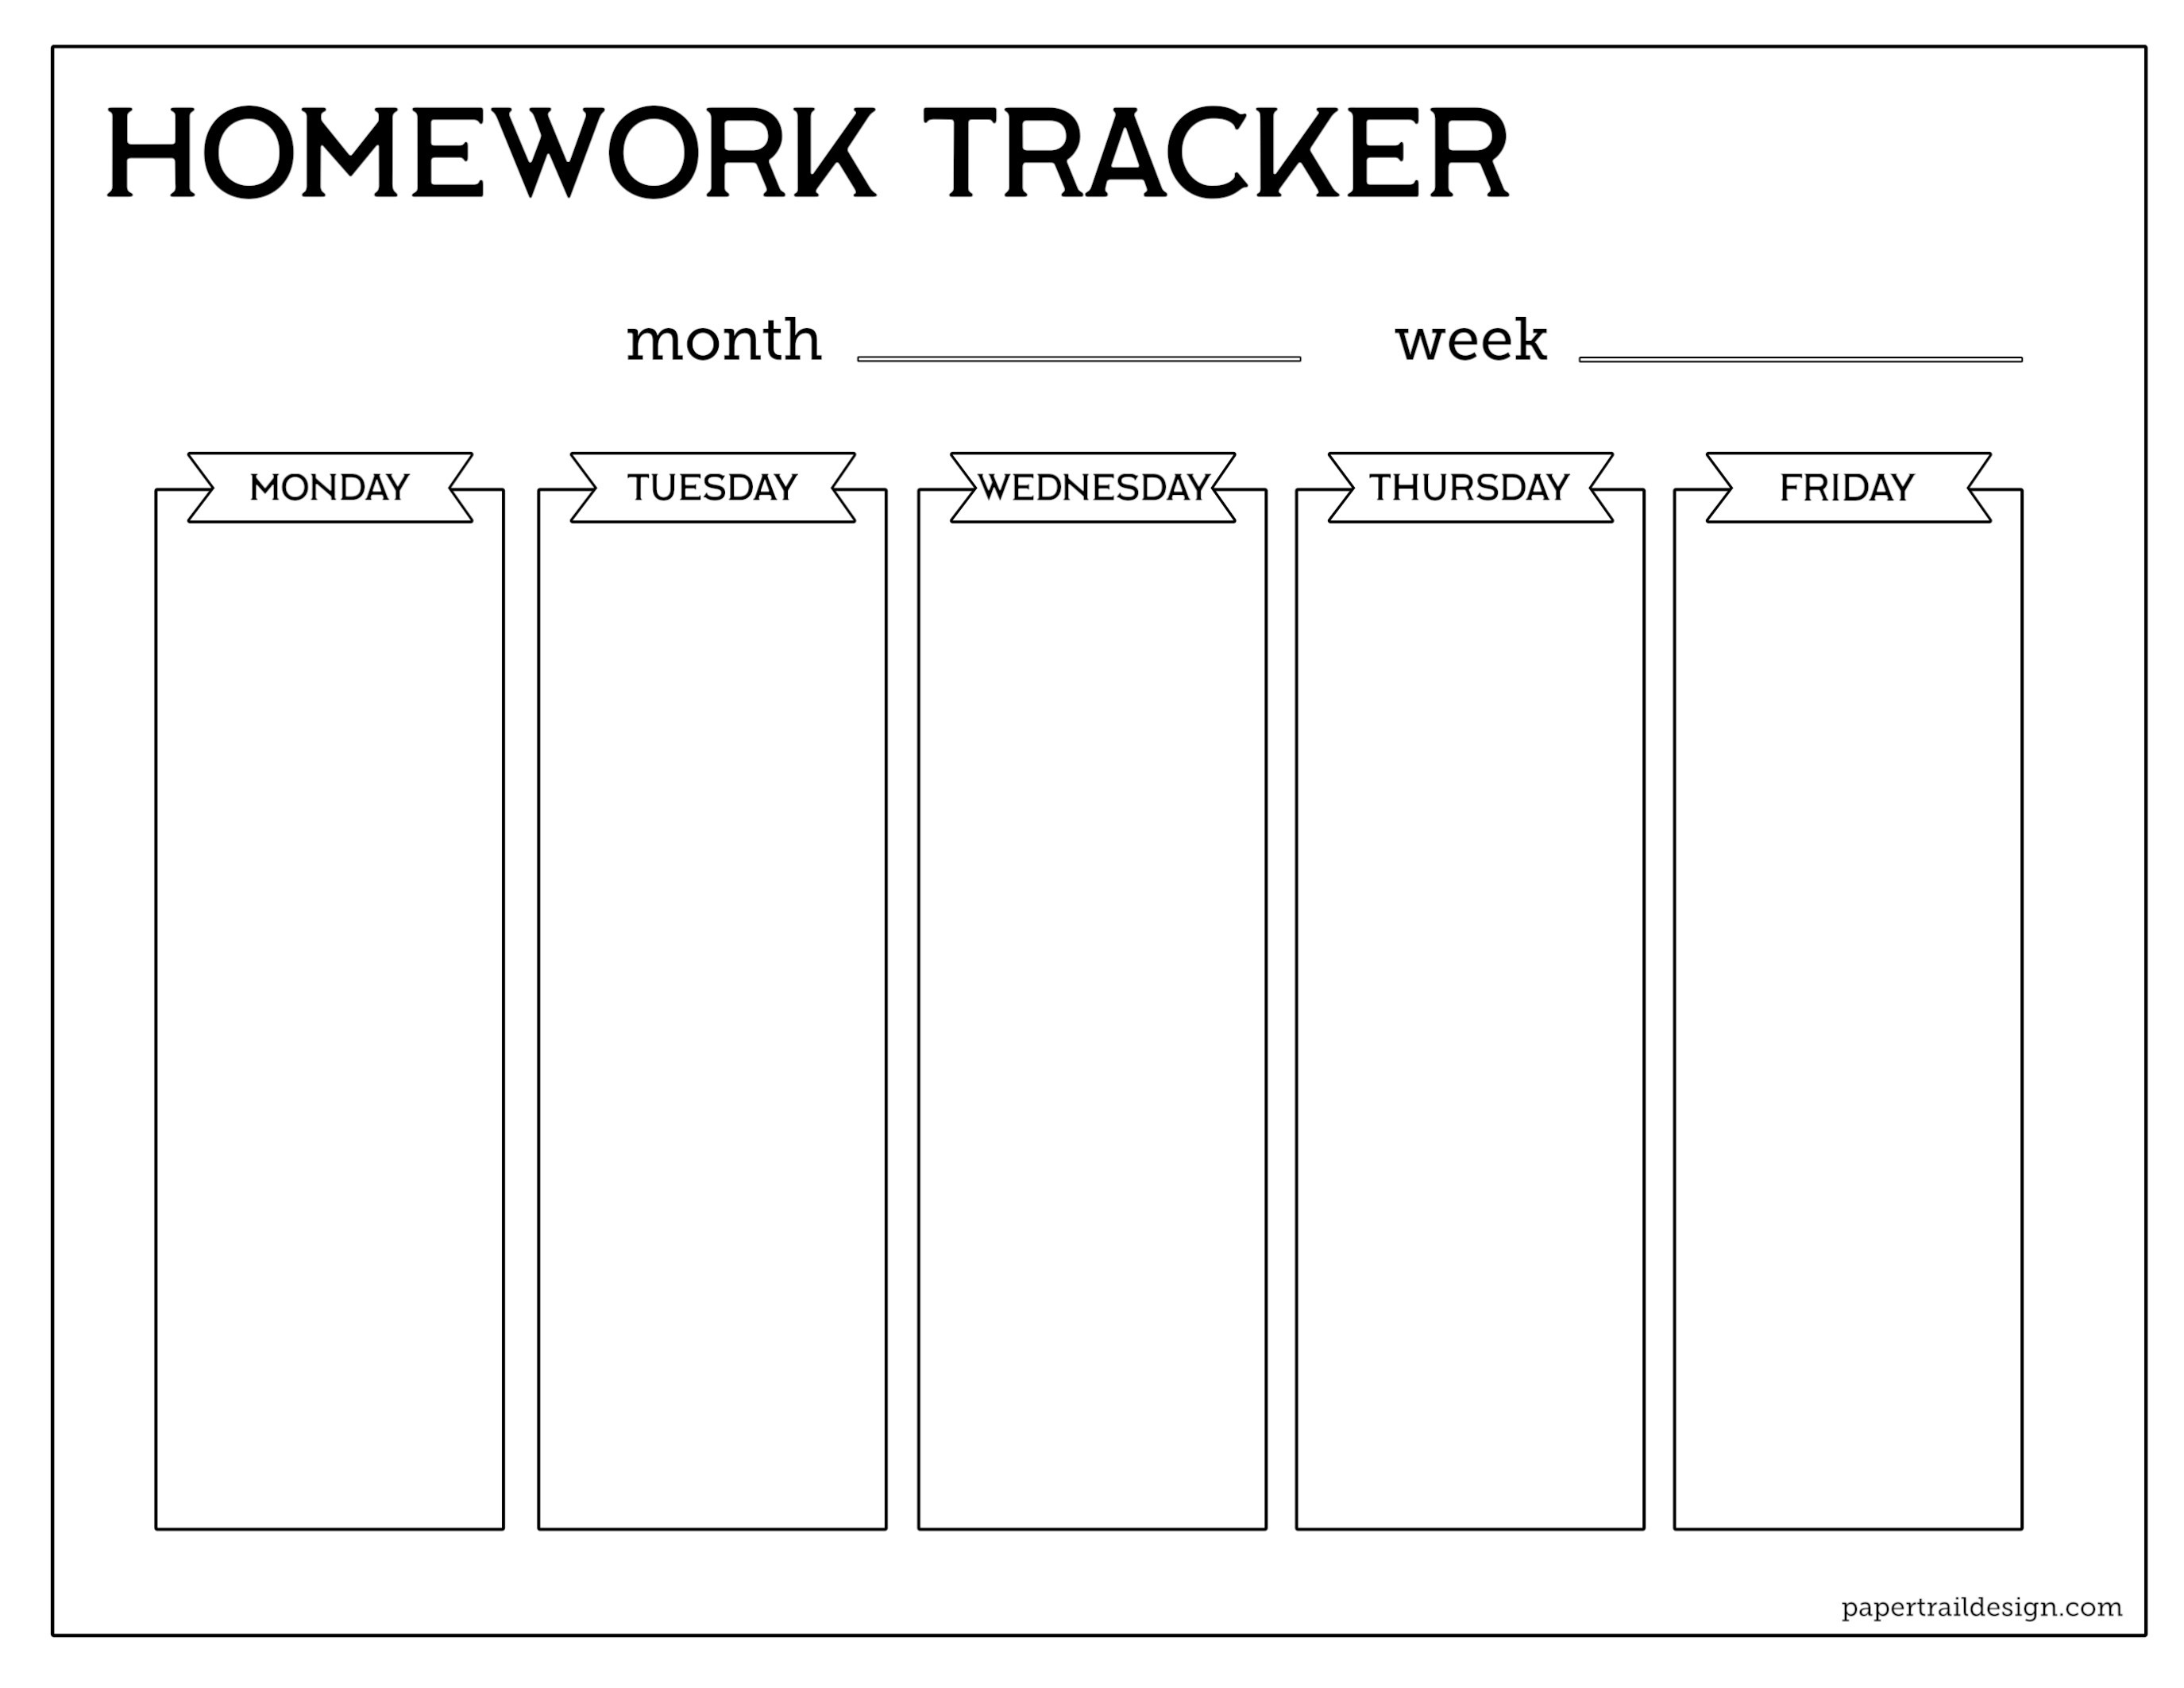 Free Printable Student Homework Planner Template - Paper Trail Design - Get Out Of Homework Free Pass Printable